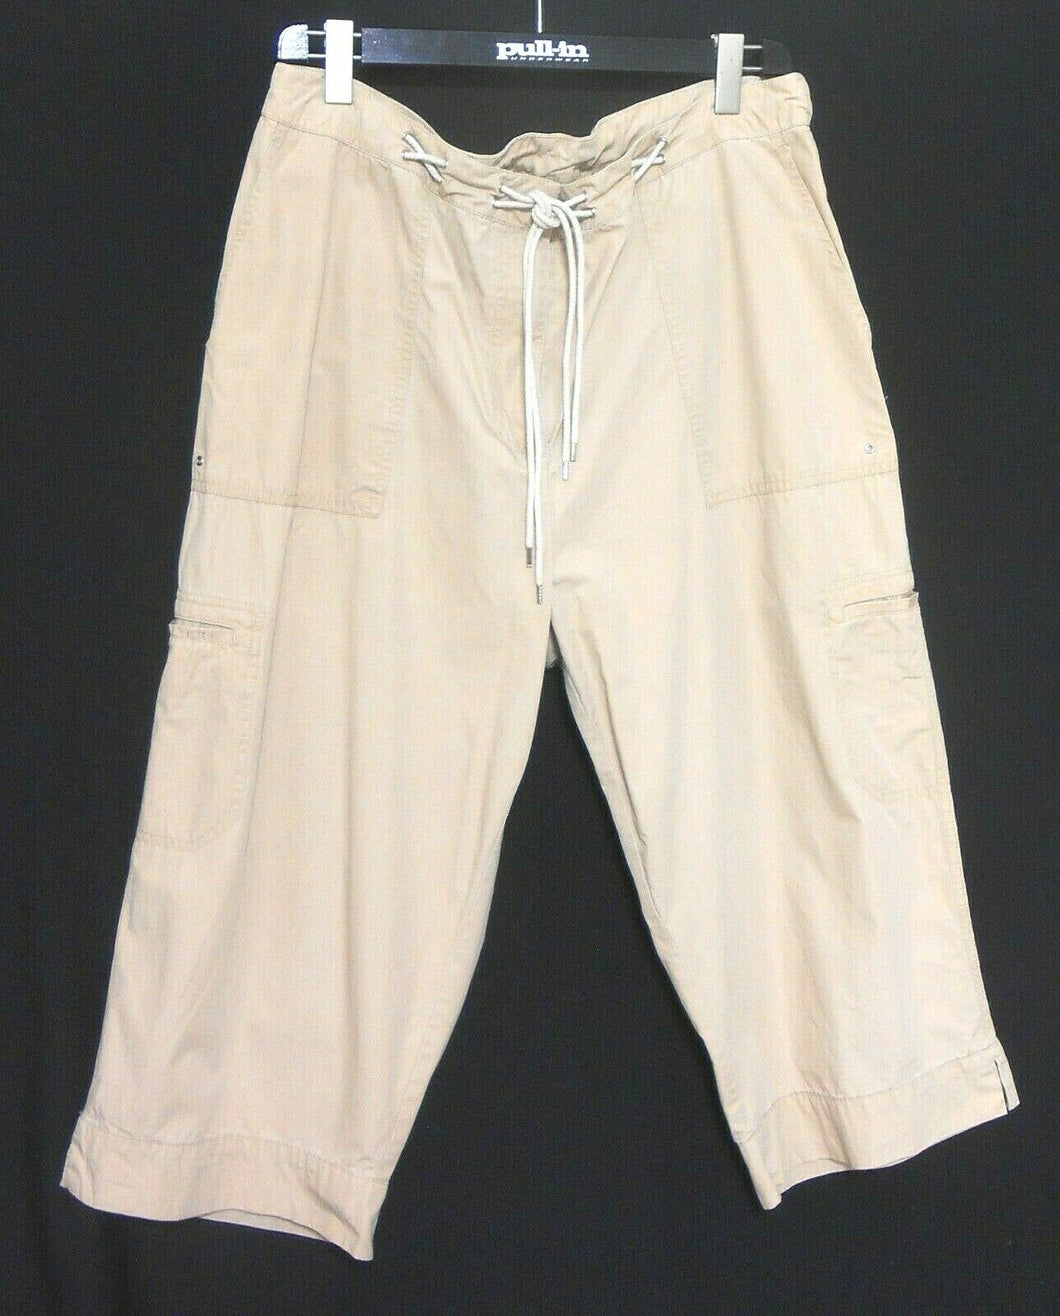 Ralph Lauren sporty beige pants, cargo style, sz. 18-20, near new